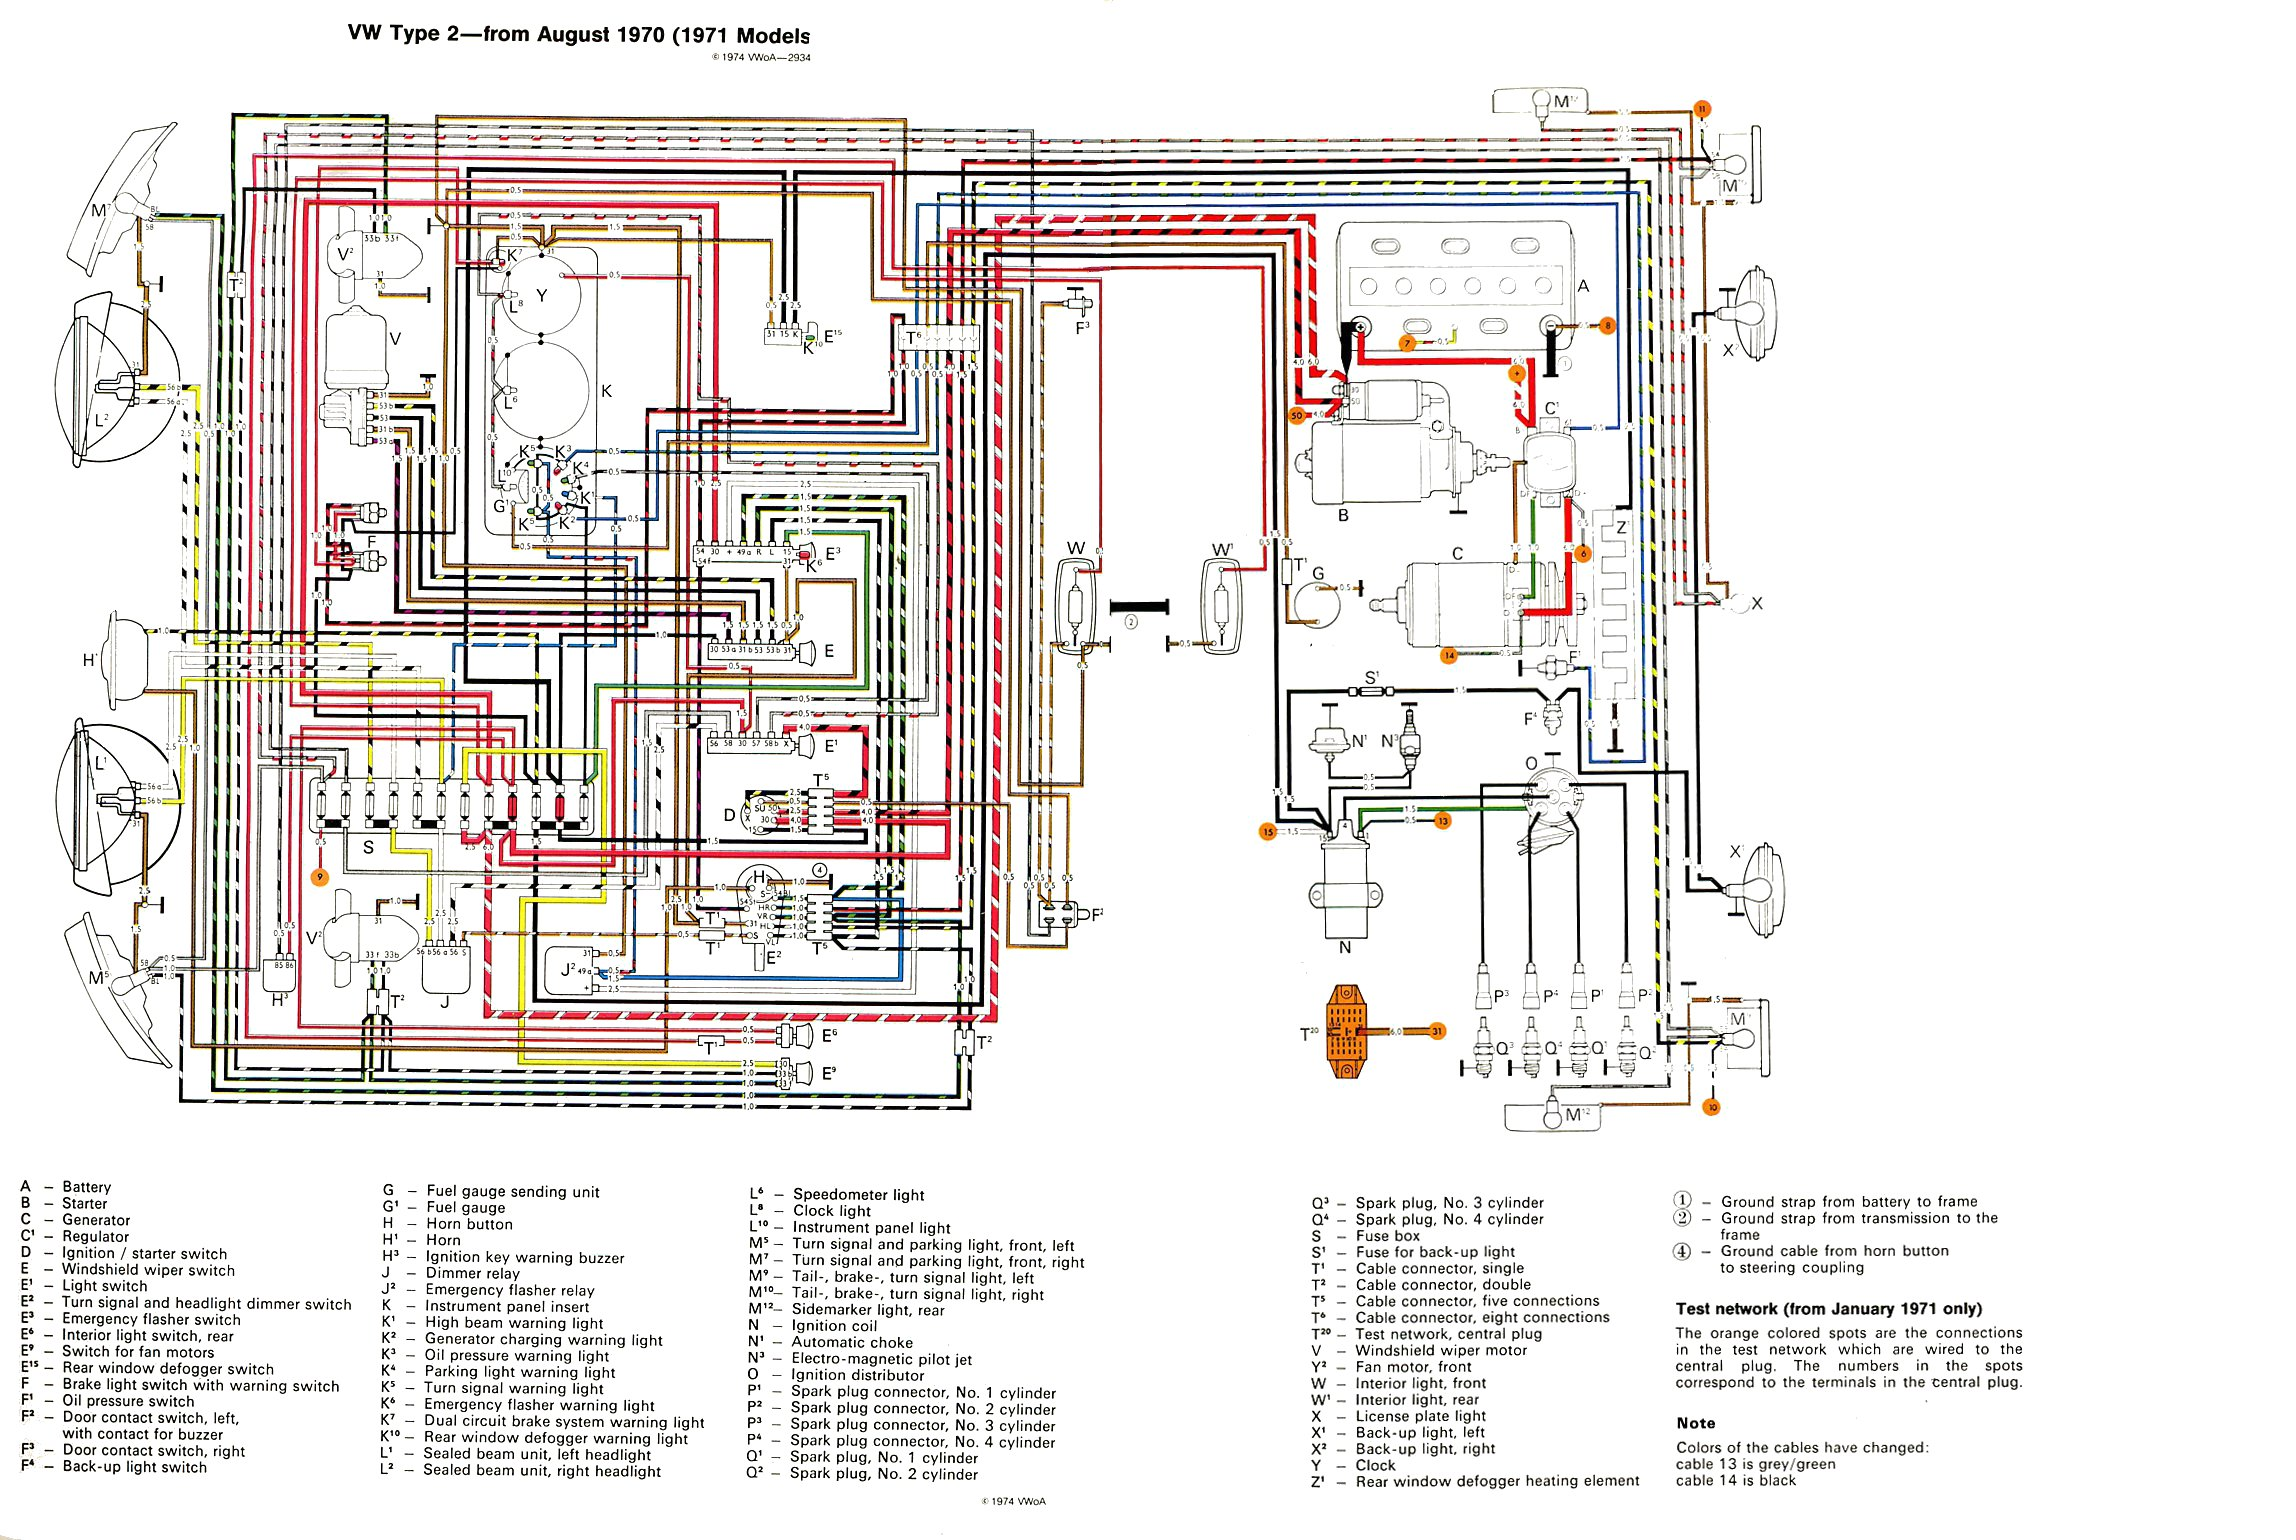 baybus_71 thesamba com type 2 wiring diagrams fuse box wiring diagram at nearapp.co